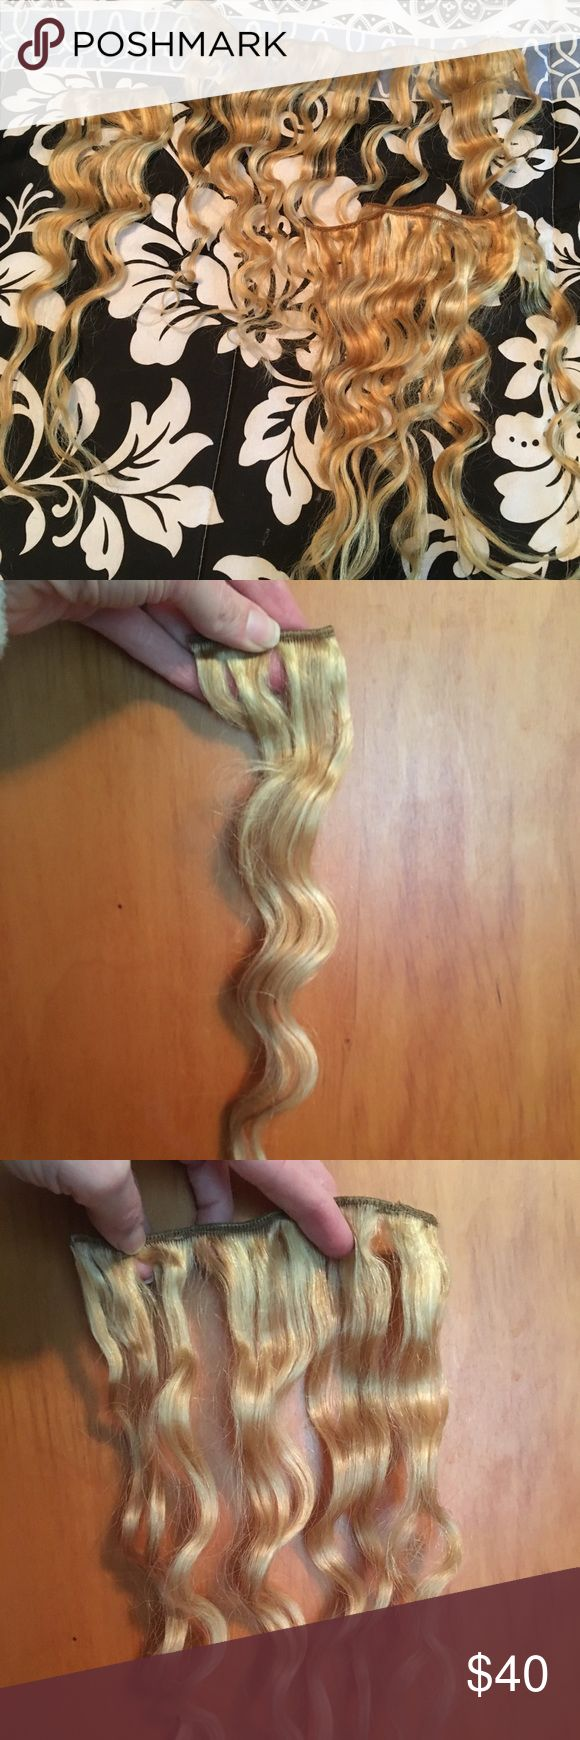 Jessica Simpson Hair Extensions Worn once. Sold as set (5 pieces total) Jessica Simpson Other